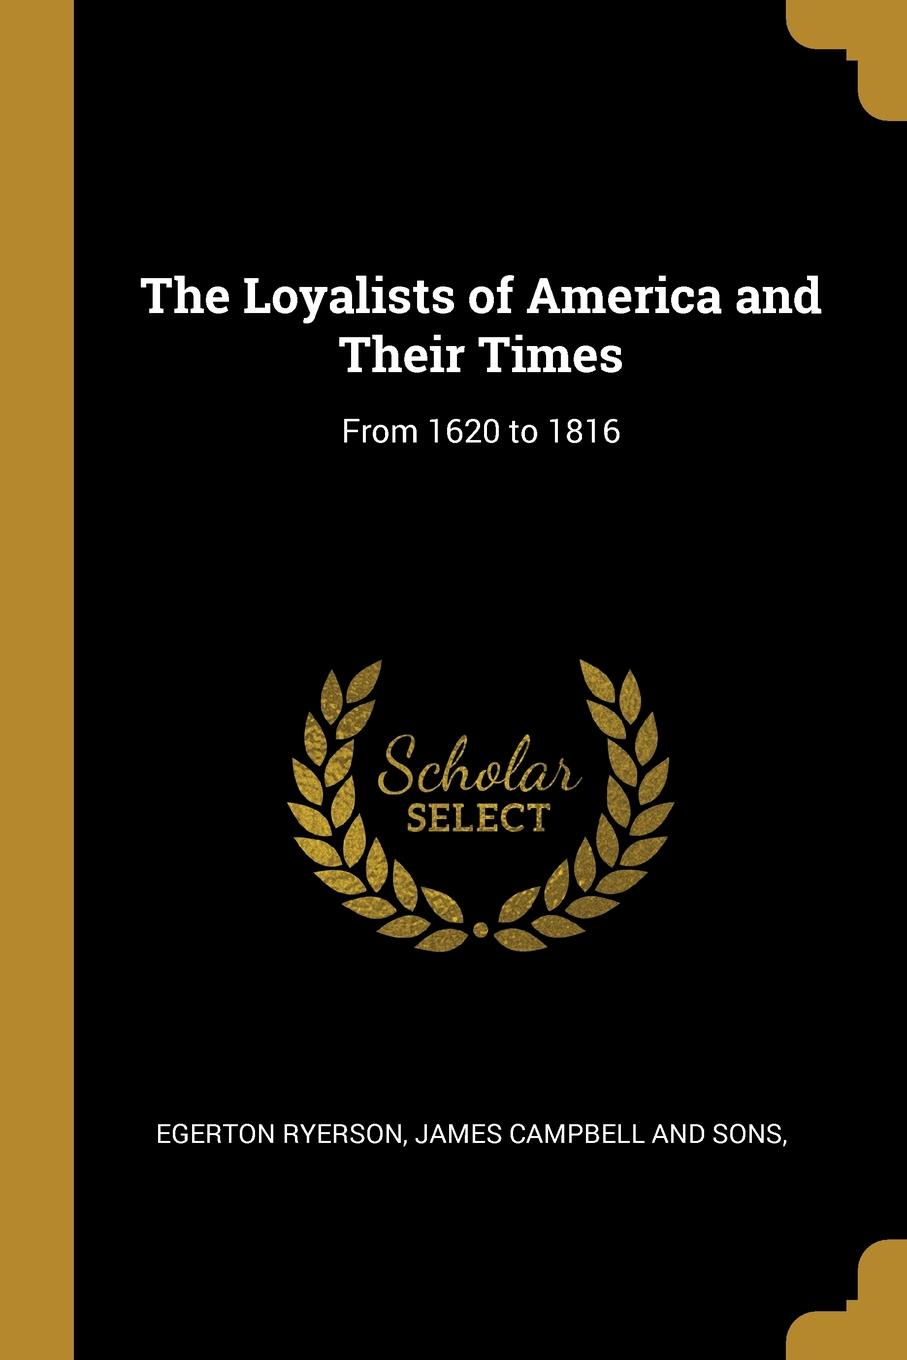 Egerton Ryerson The Loyalists of America and Their Times. From 1620 to 1816 egerton ryerson the loyalists of america and their times